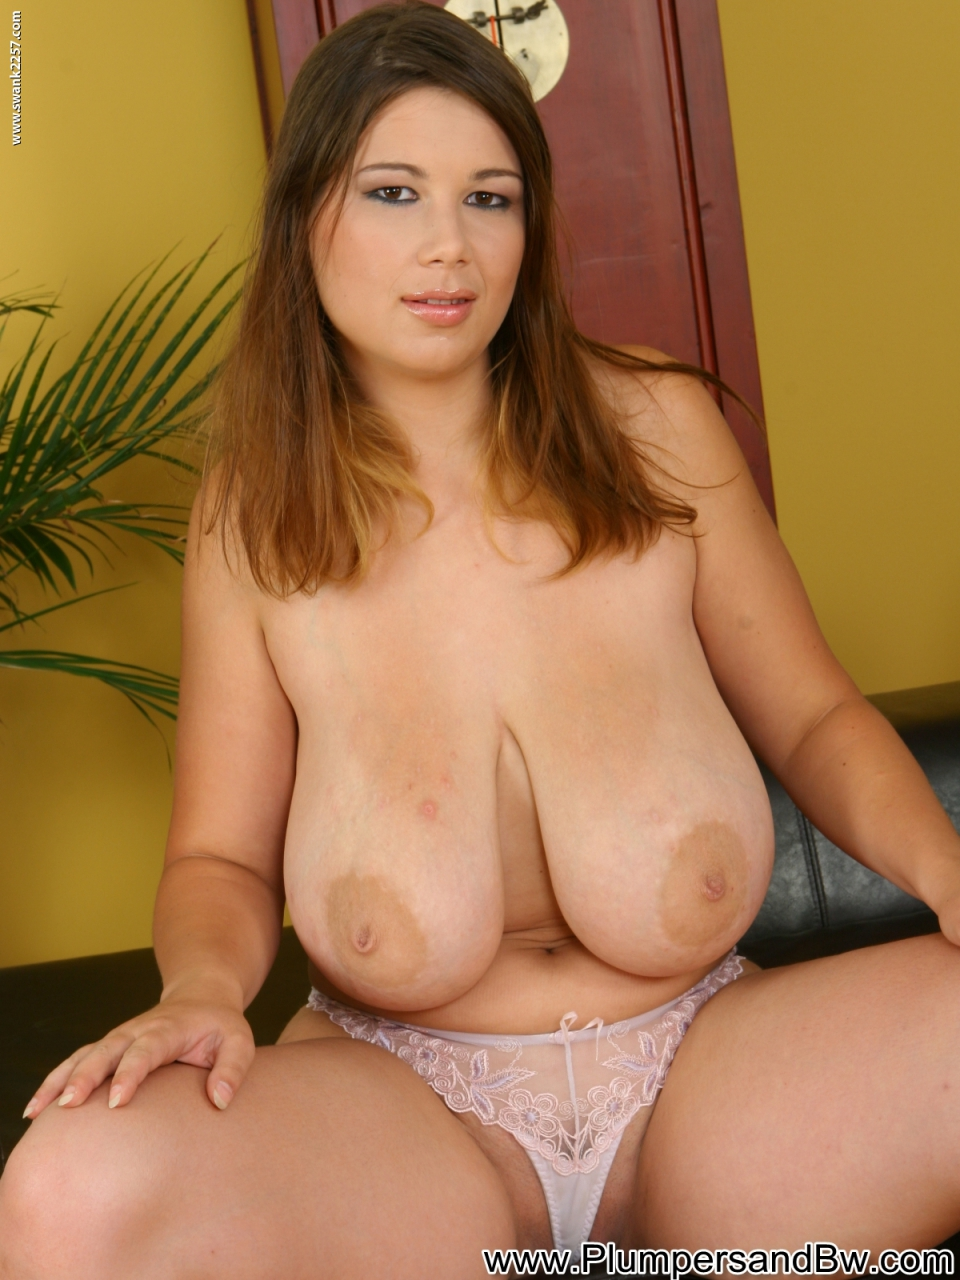 Naked latina picturesnaked latina pictures